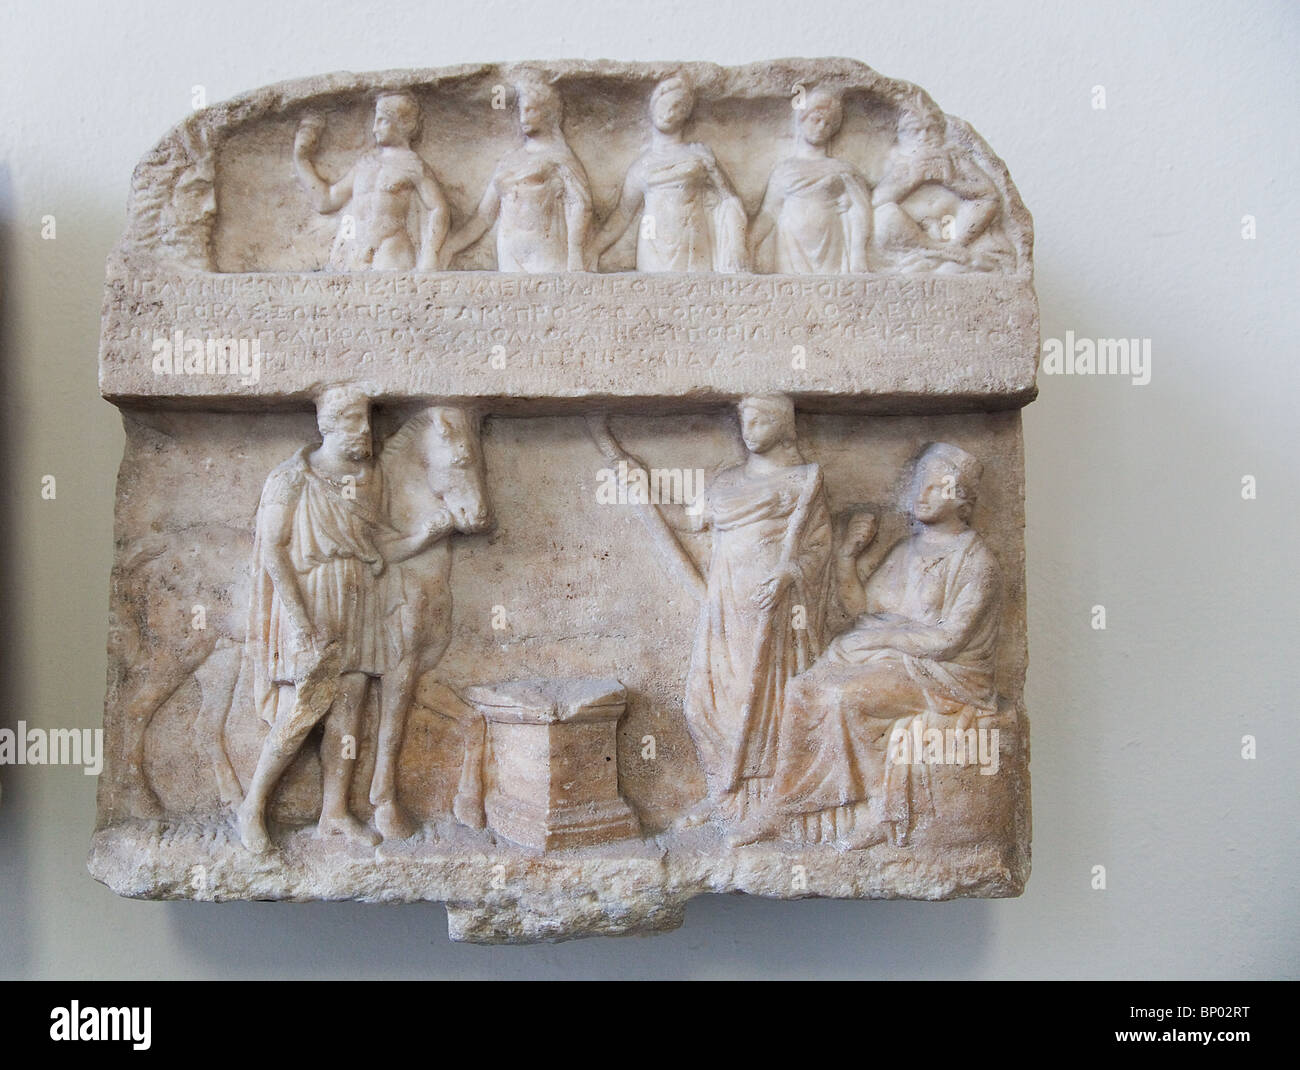 Pergamon Museum artifacts in Berlin, Germany 'Top: Hermes guiding Nymphs and Pan top. Bottom: Heros with Demeter - Stock Image